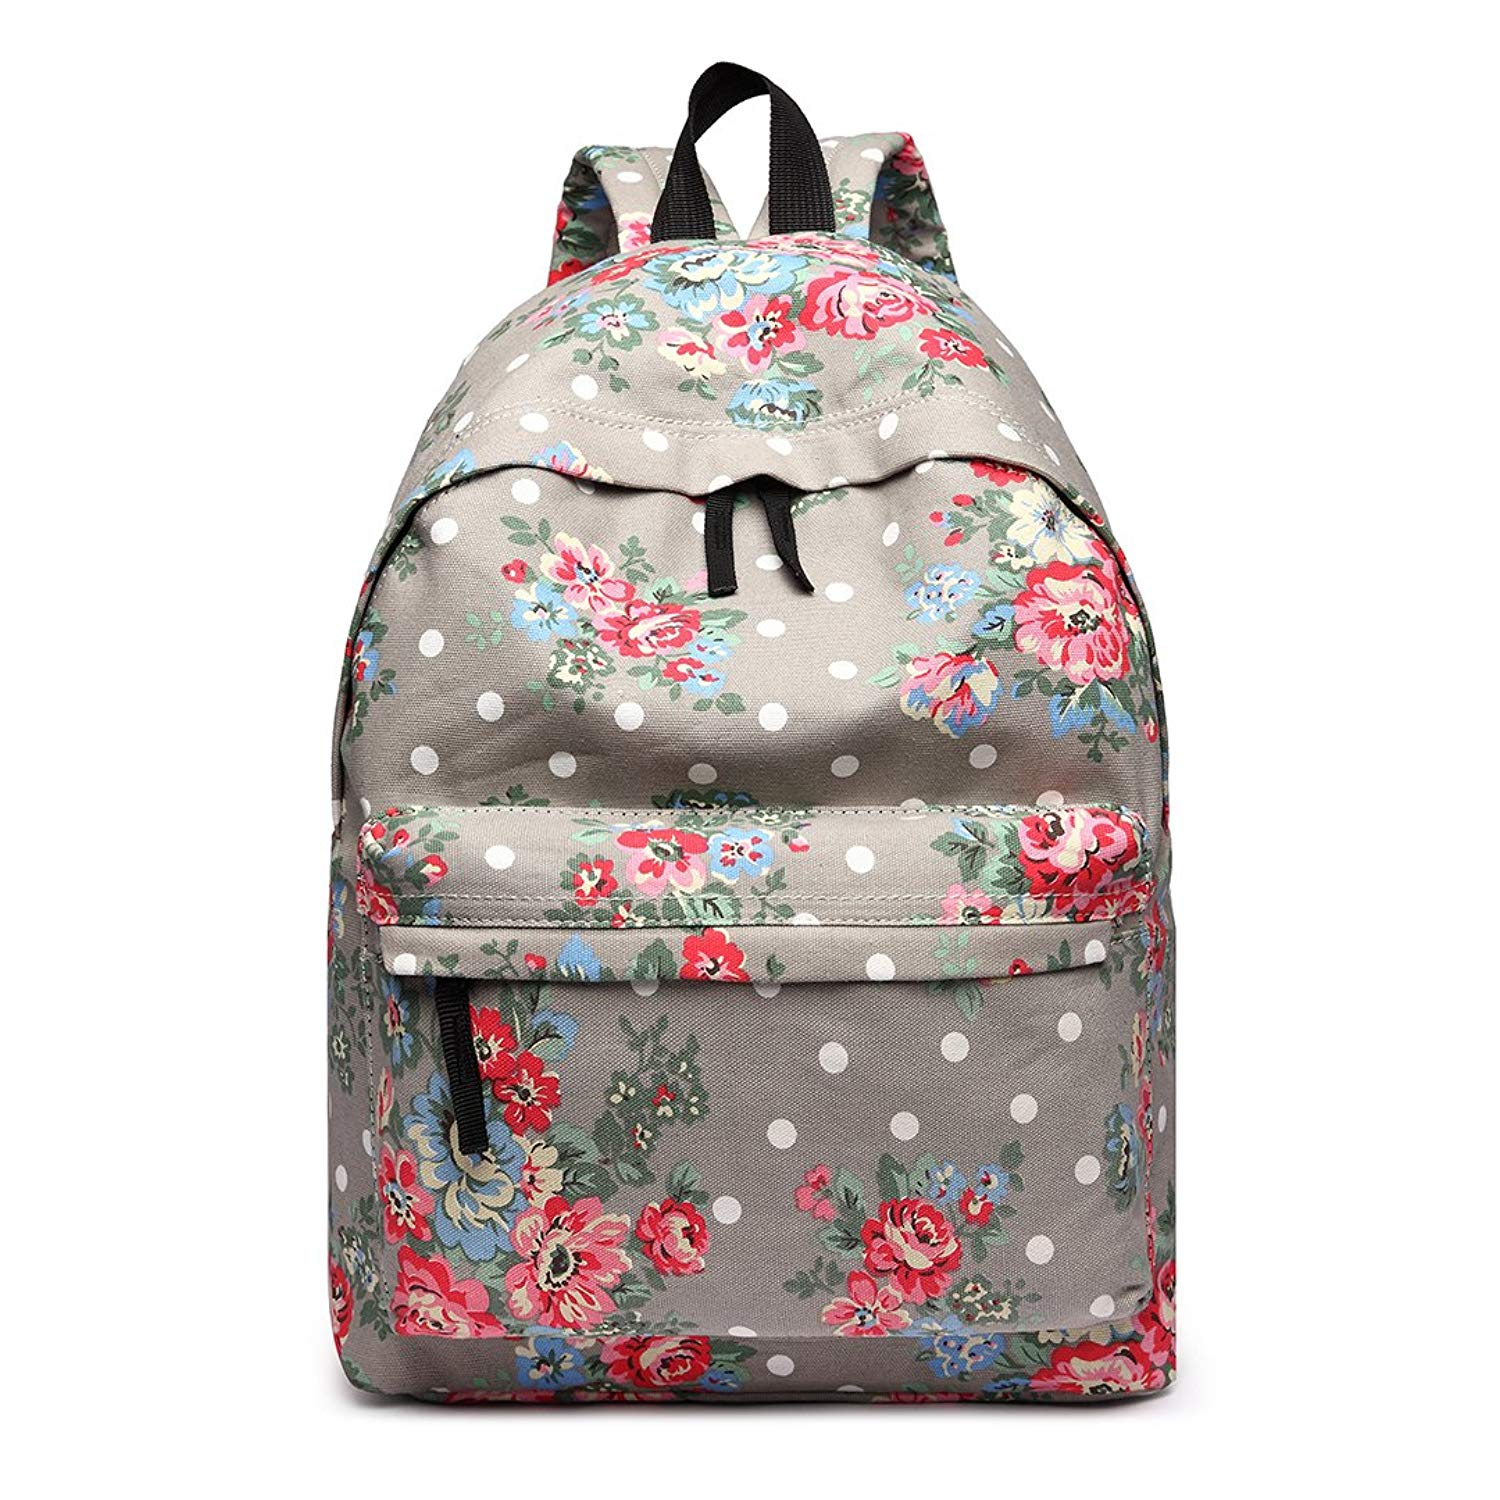 5078867f72 Get Quotations · Miss Lulu Large Canvas Daypack Backpack for School, Office  and Everyday